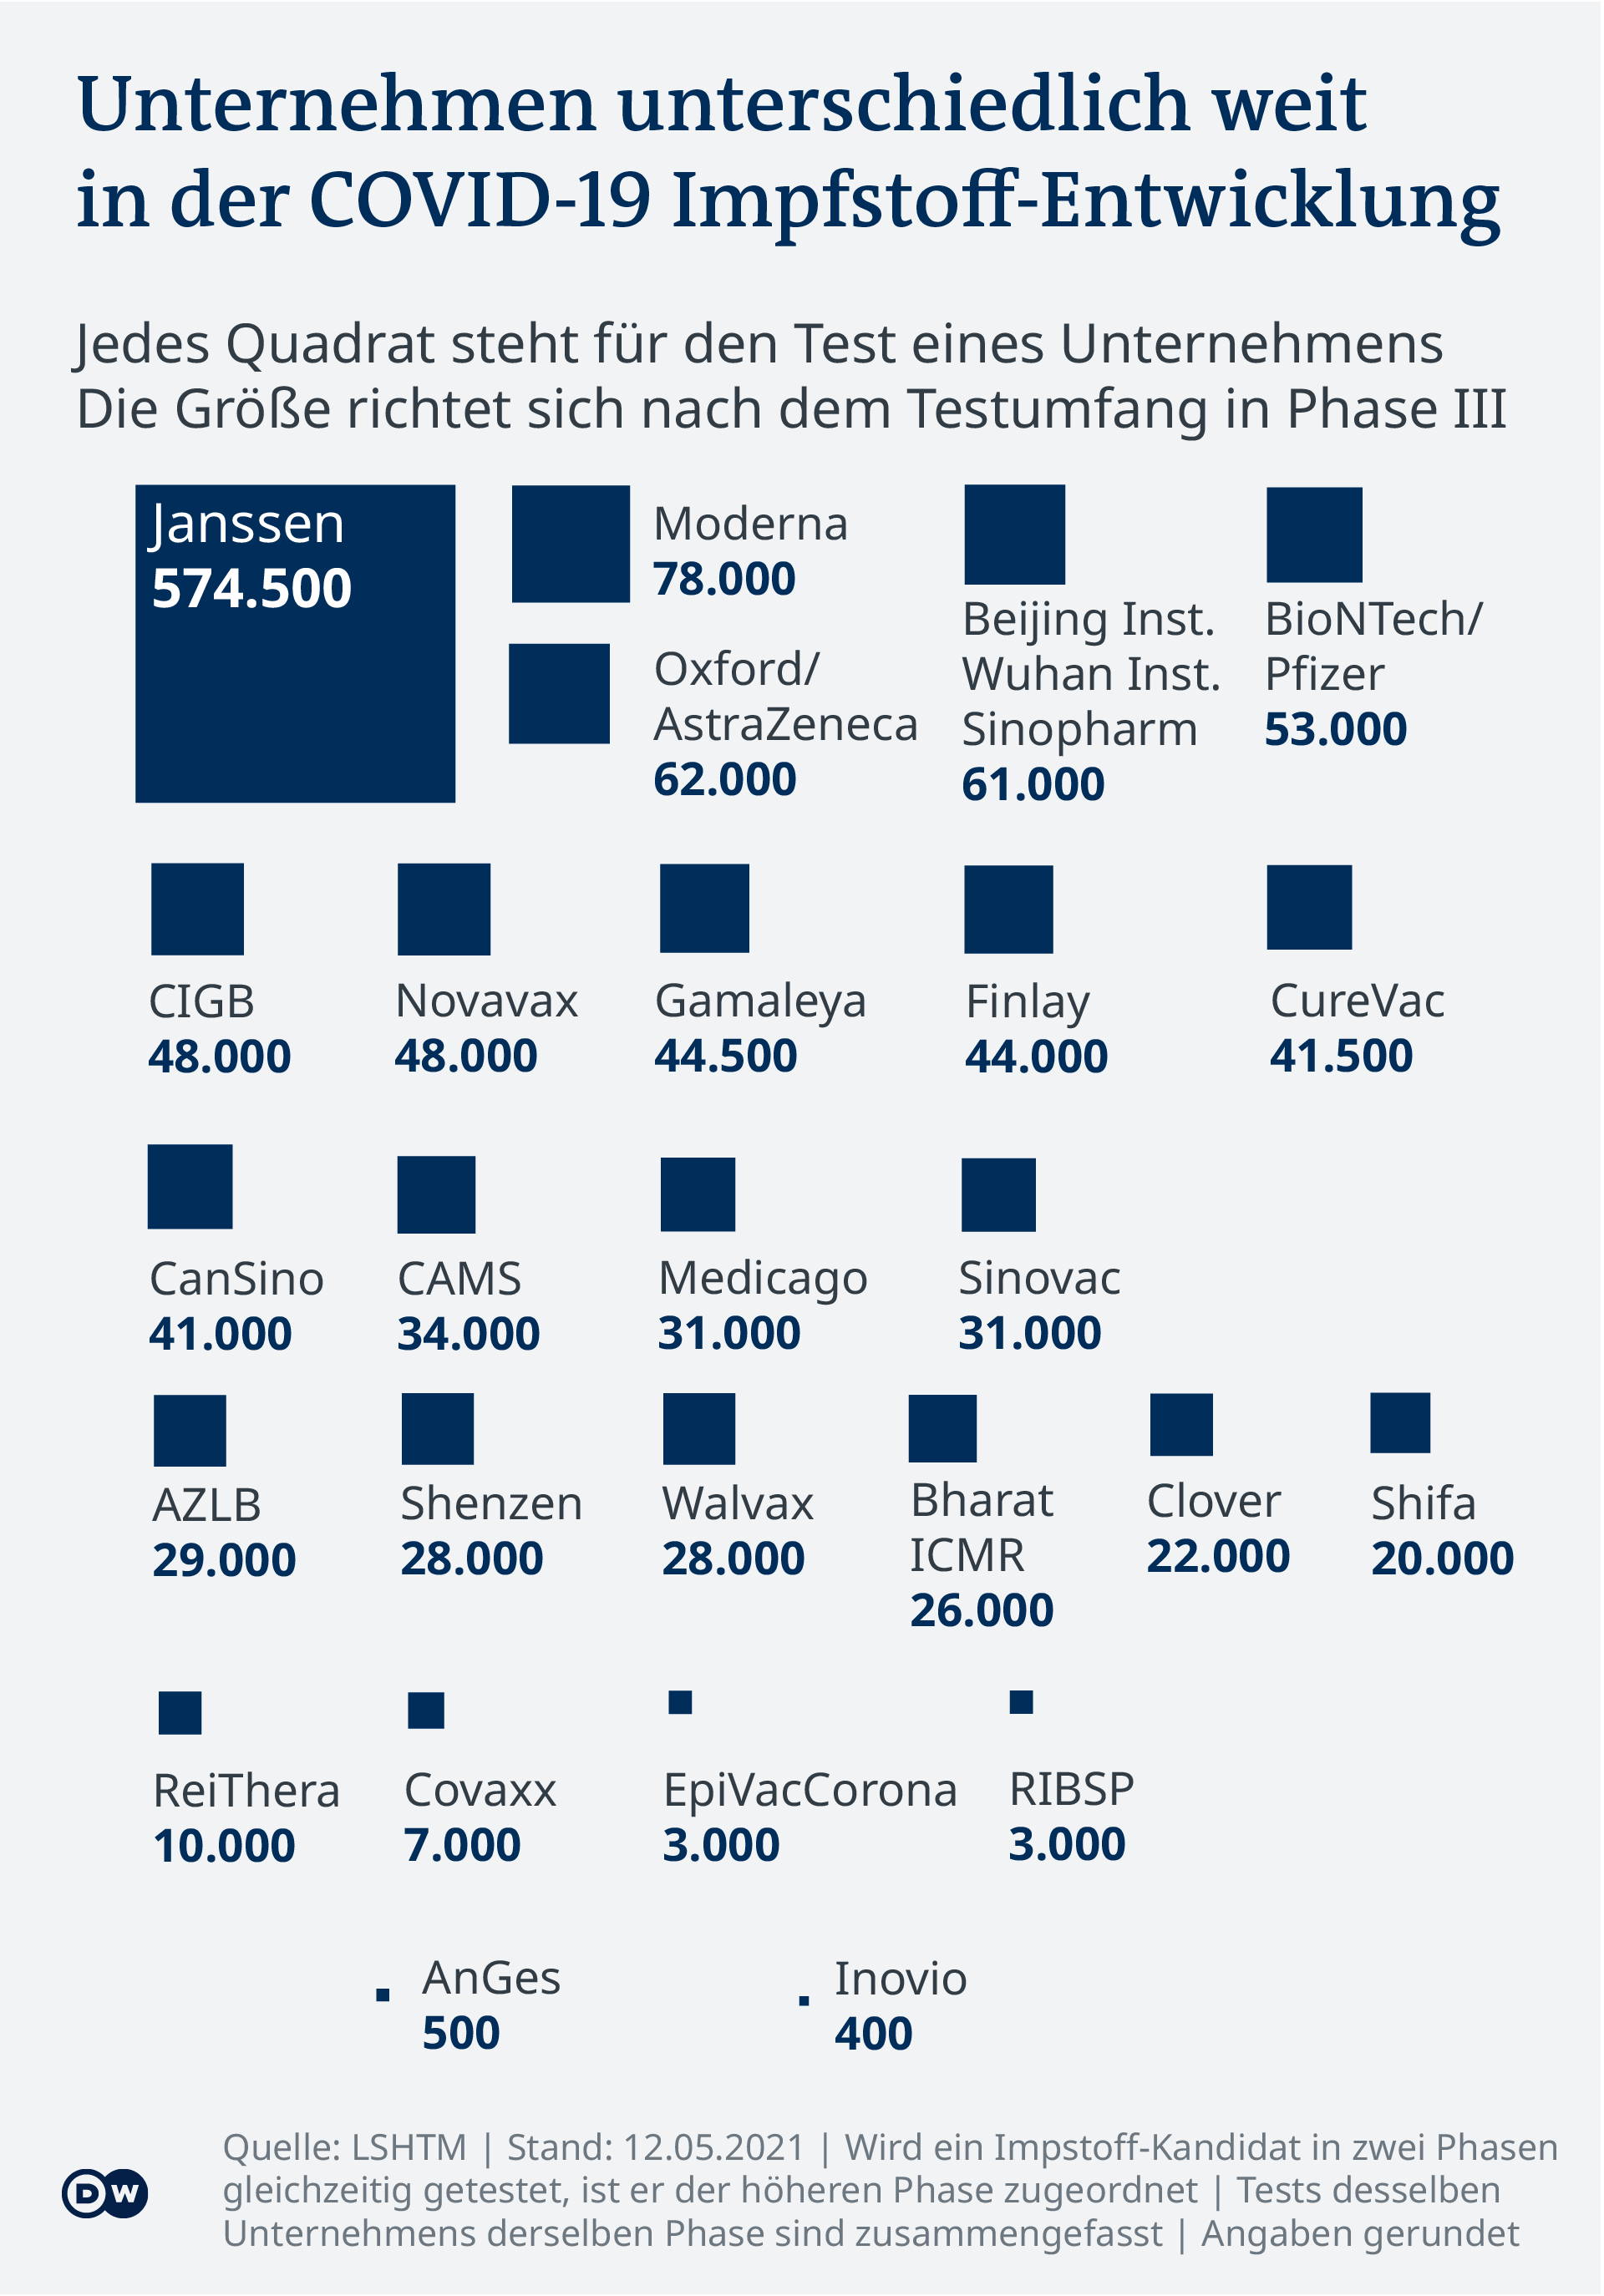 Data visualization - COVID-19 vaccine tracker - Research Teams - Update May 12, 2021 - German